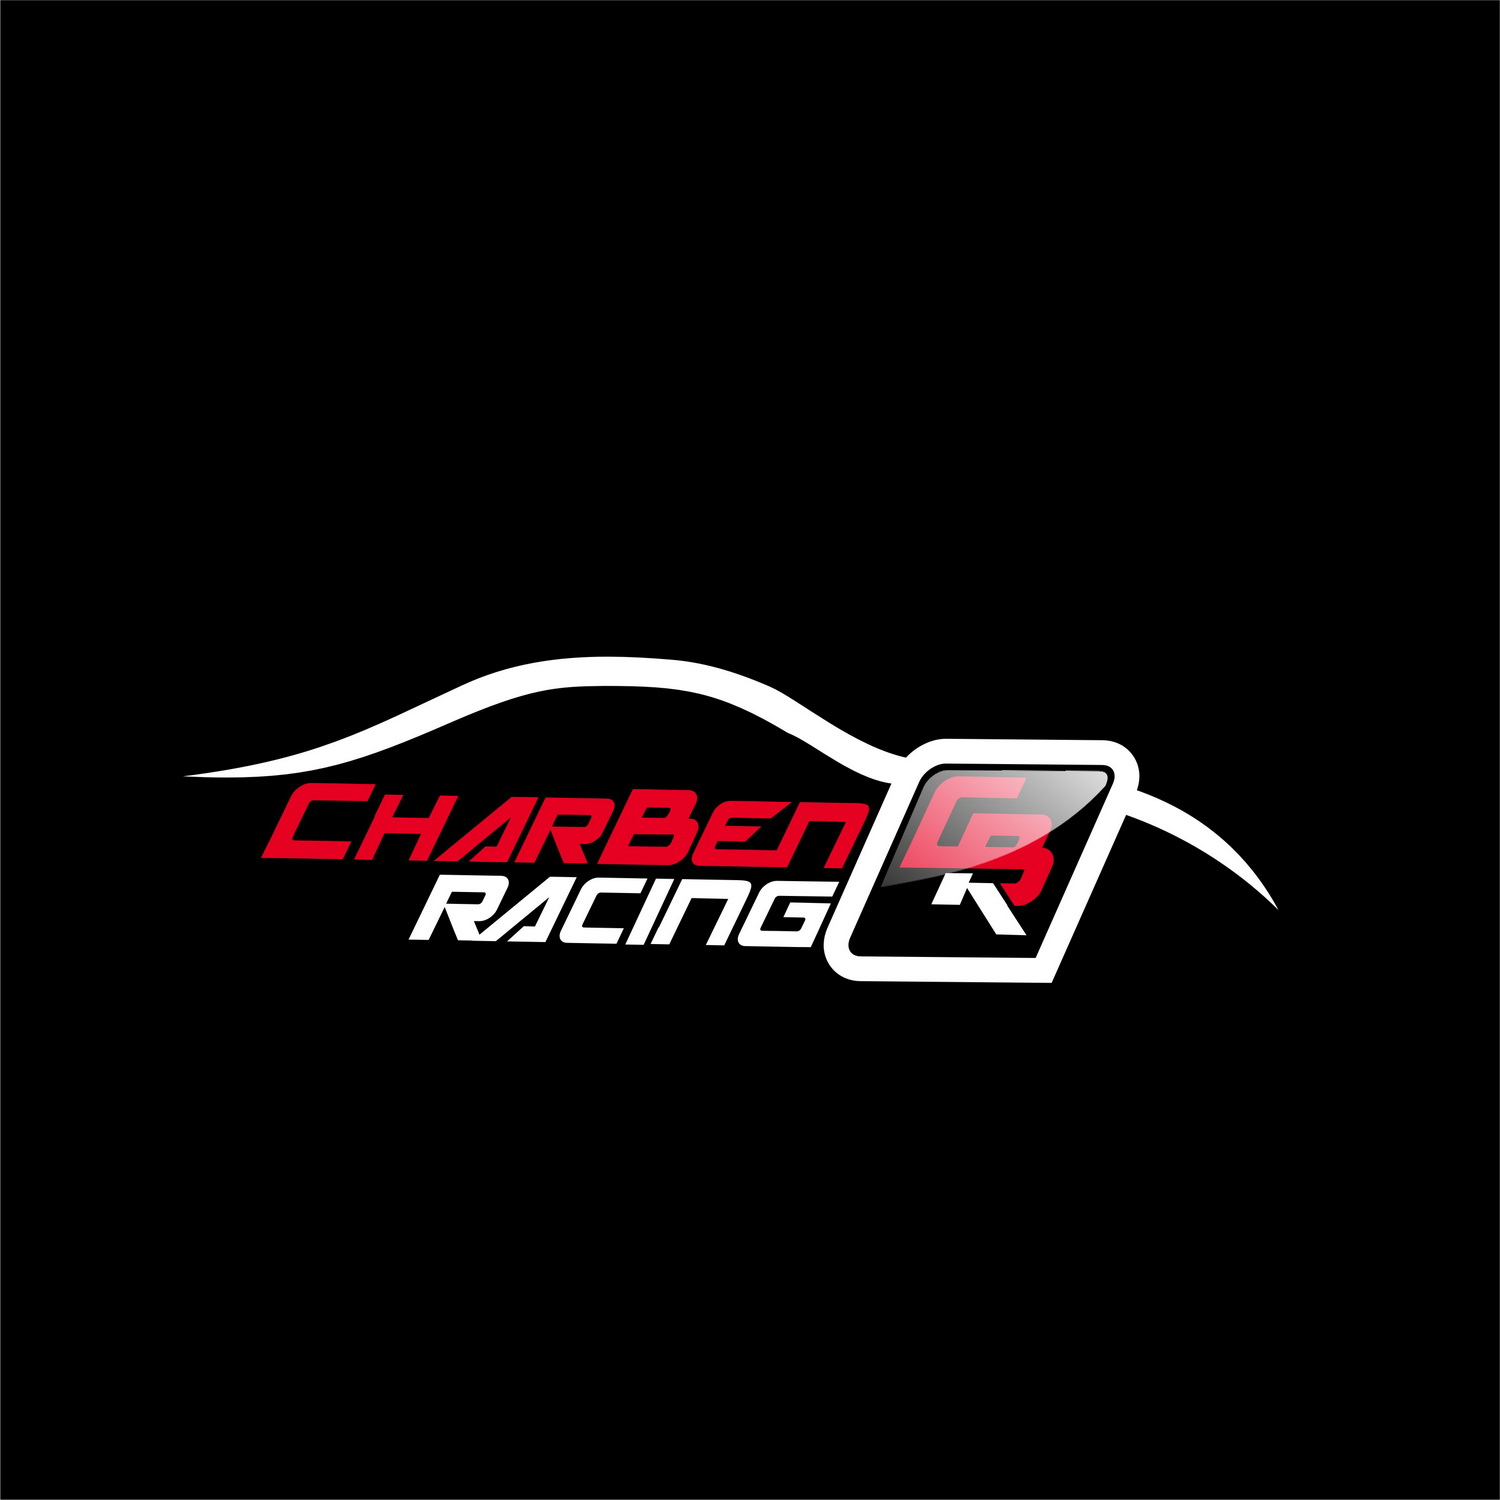 71 Masculine Bold Car Racing Logo Designs for Charben ...